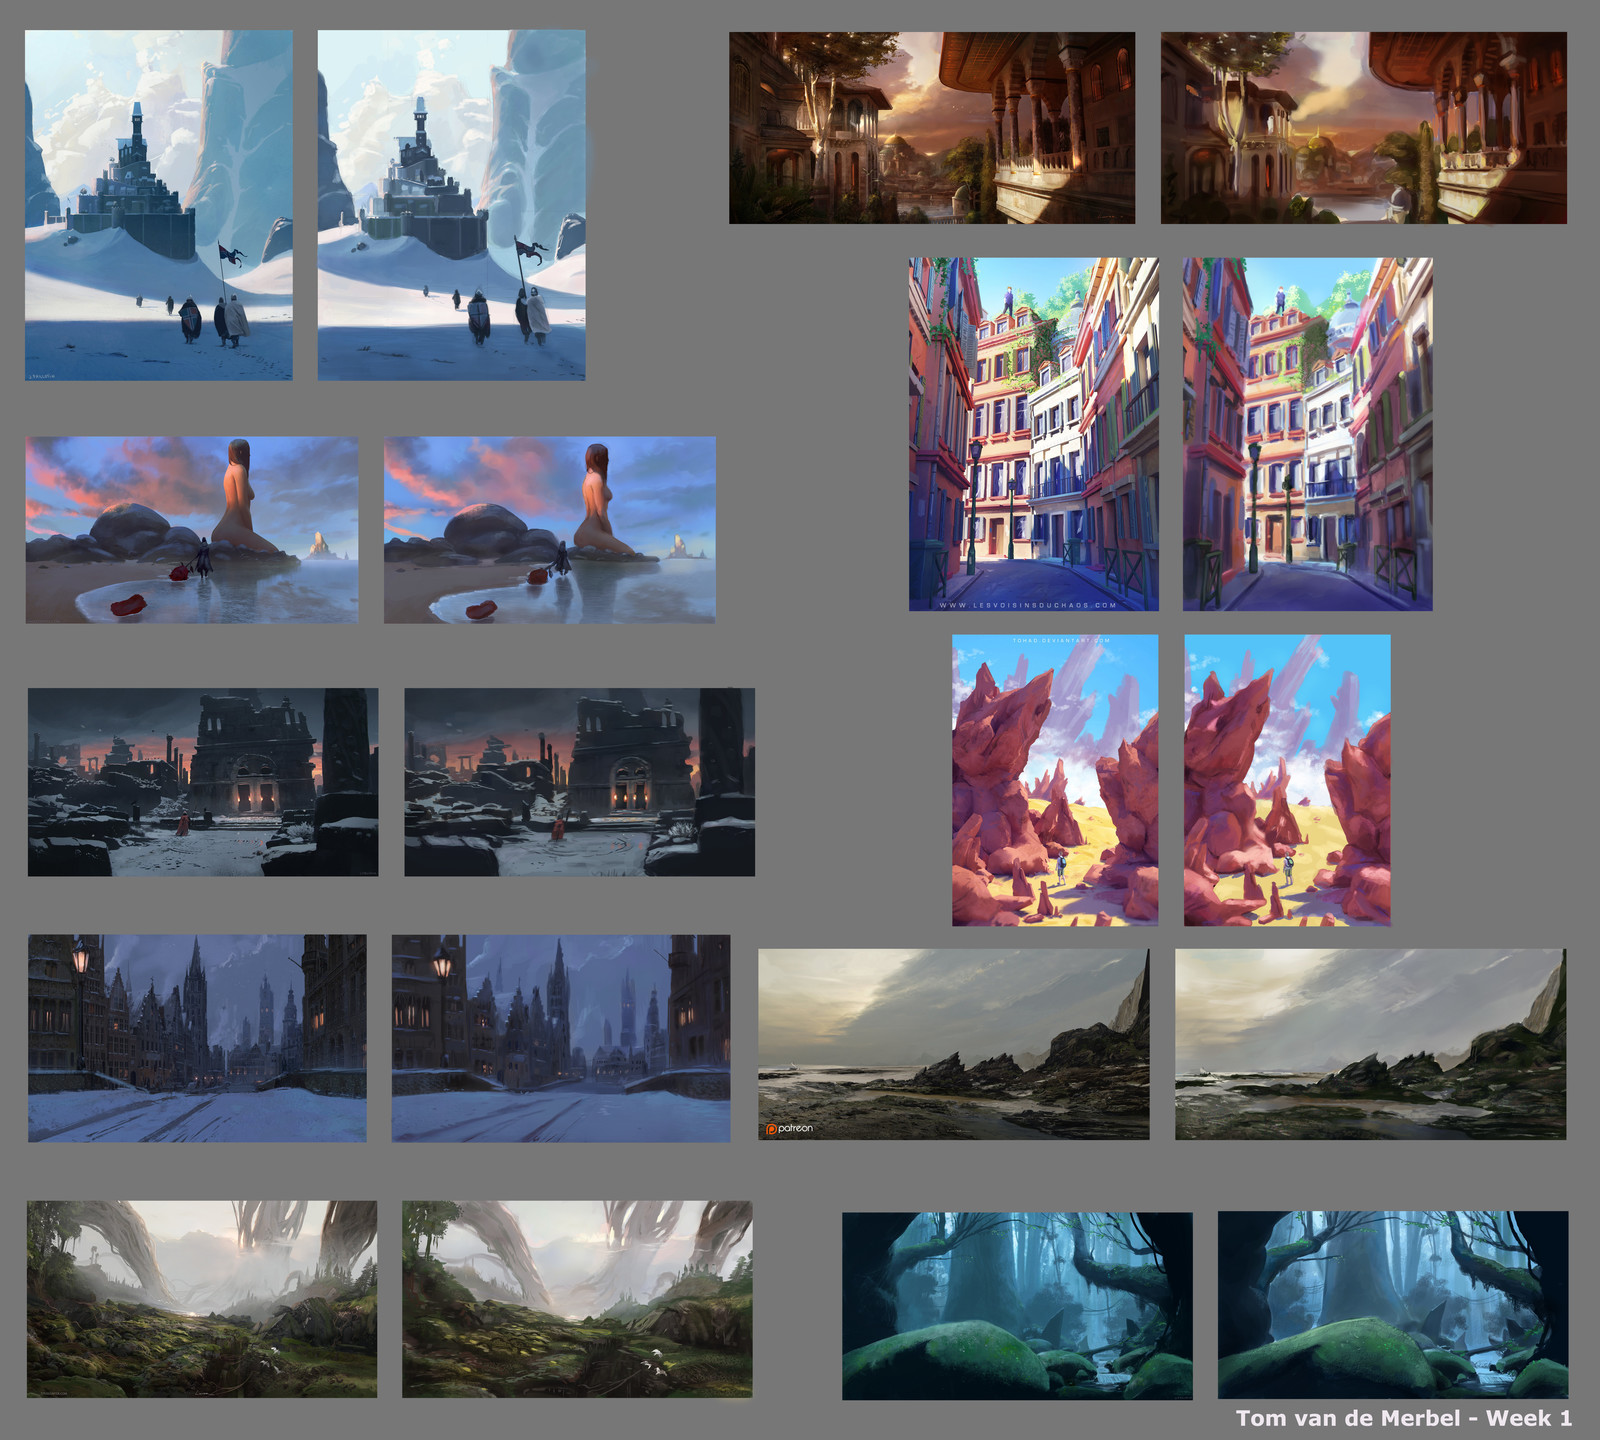 1hr Thumbnail Copies. Originals on the left. Artists: from up to down/left to right:   J. Paillotin James Zapata J. Paillotin Titus Lunter Titus Lunter Titus Lunter Sylvain Sarrailh Sylvain Sarrailh Titus Lunter J. Paillotin